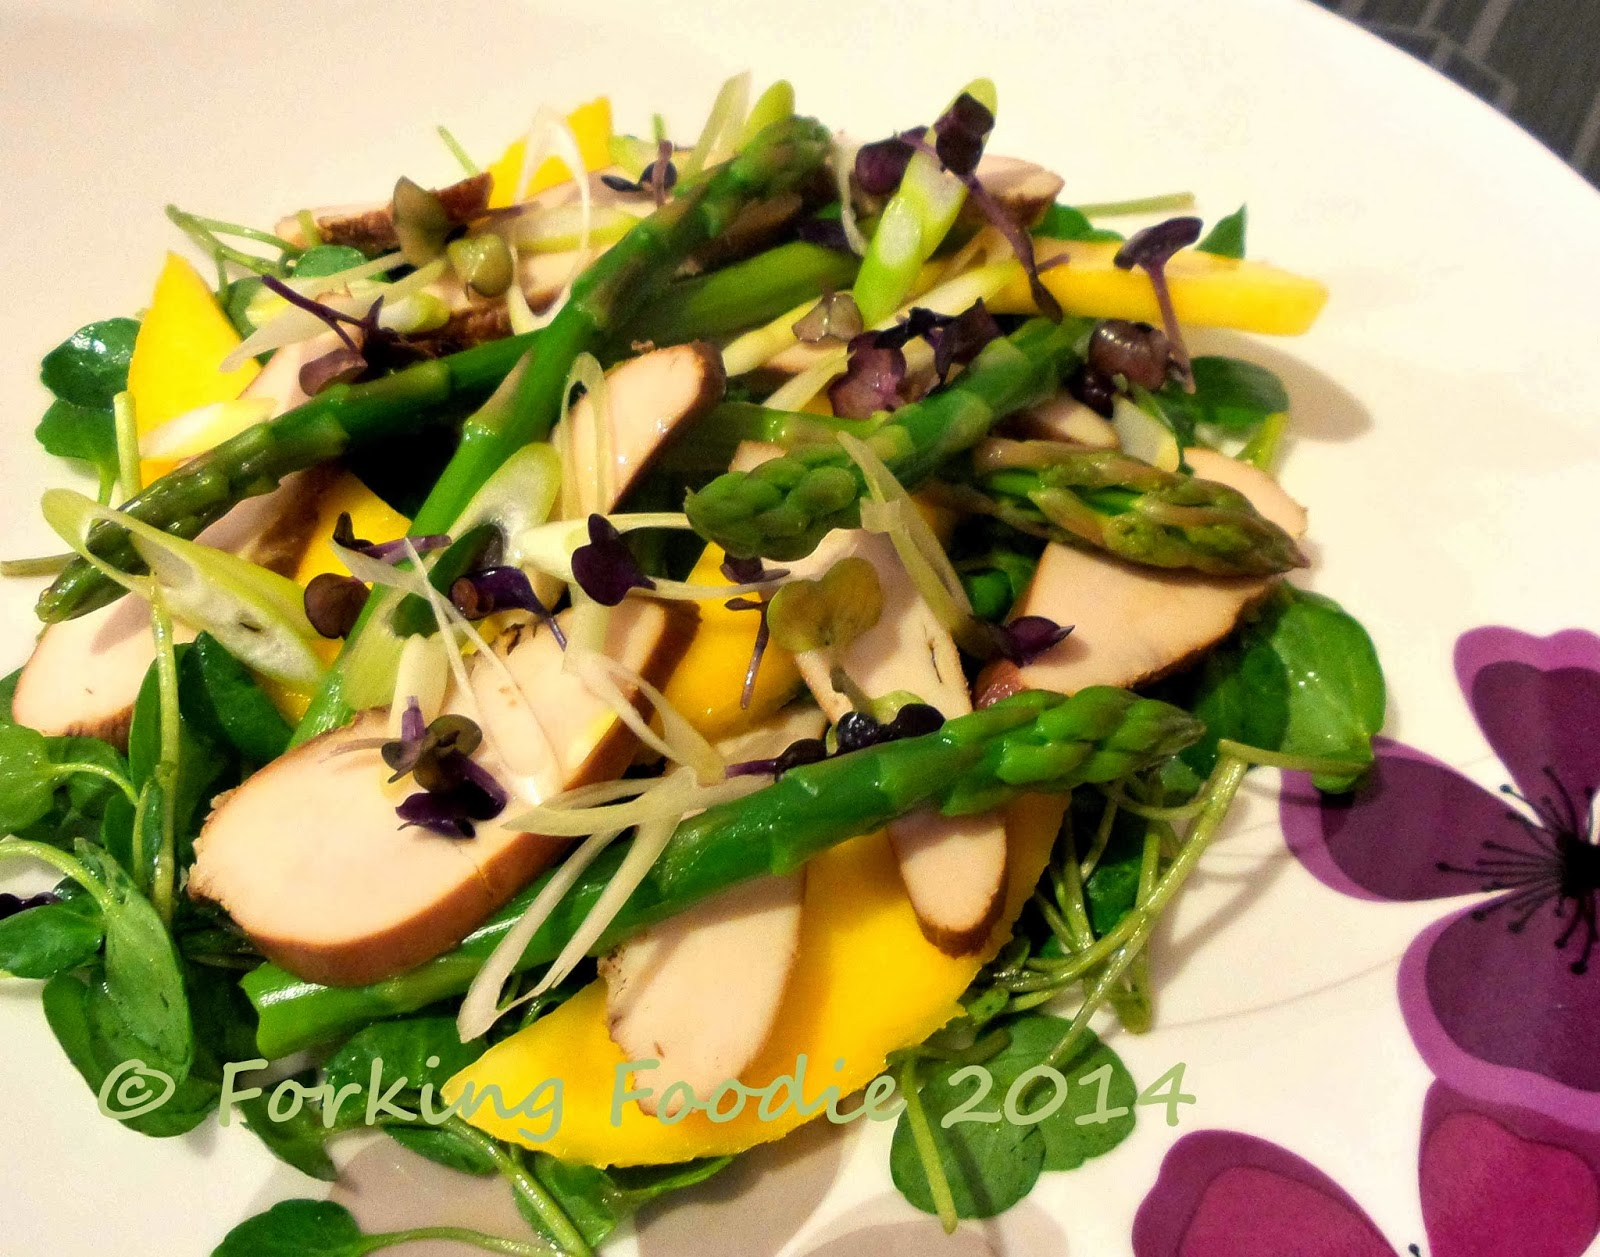 Forking Foodie: Tea-Smoked Chicken, Mango and Asparagus Salad with a ...